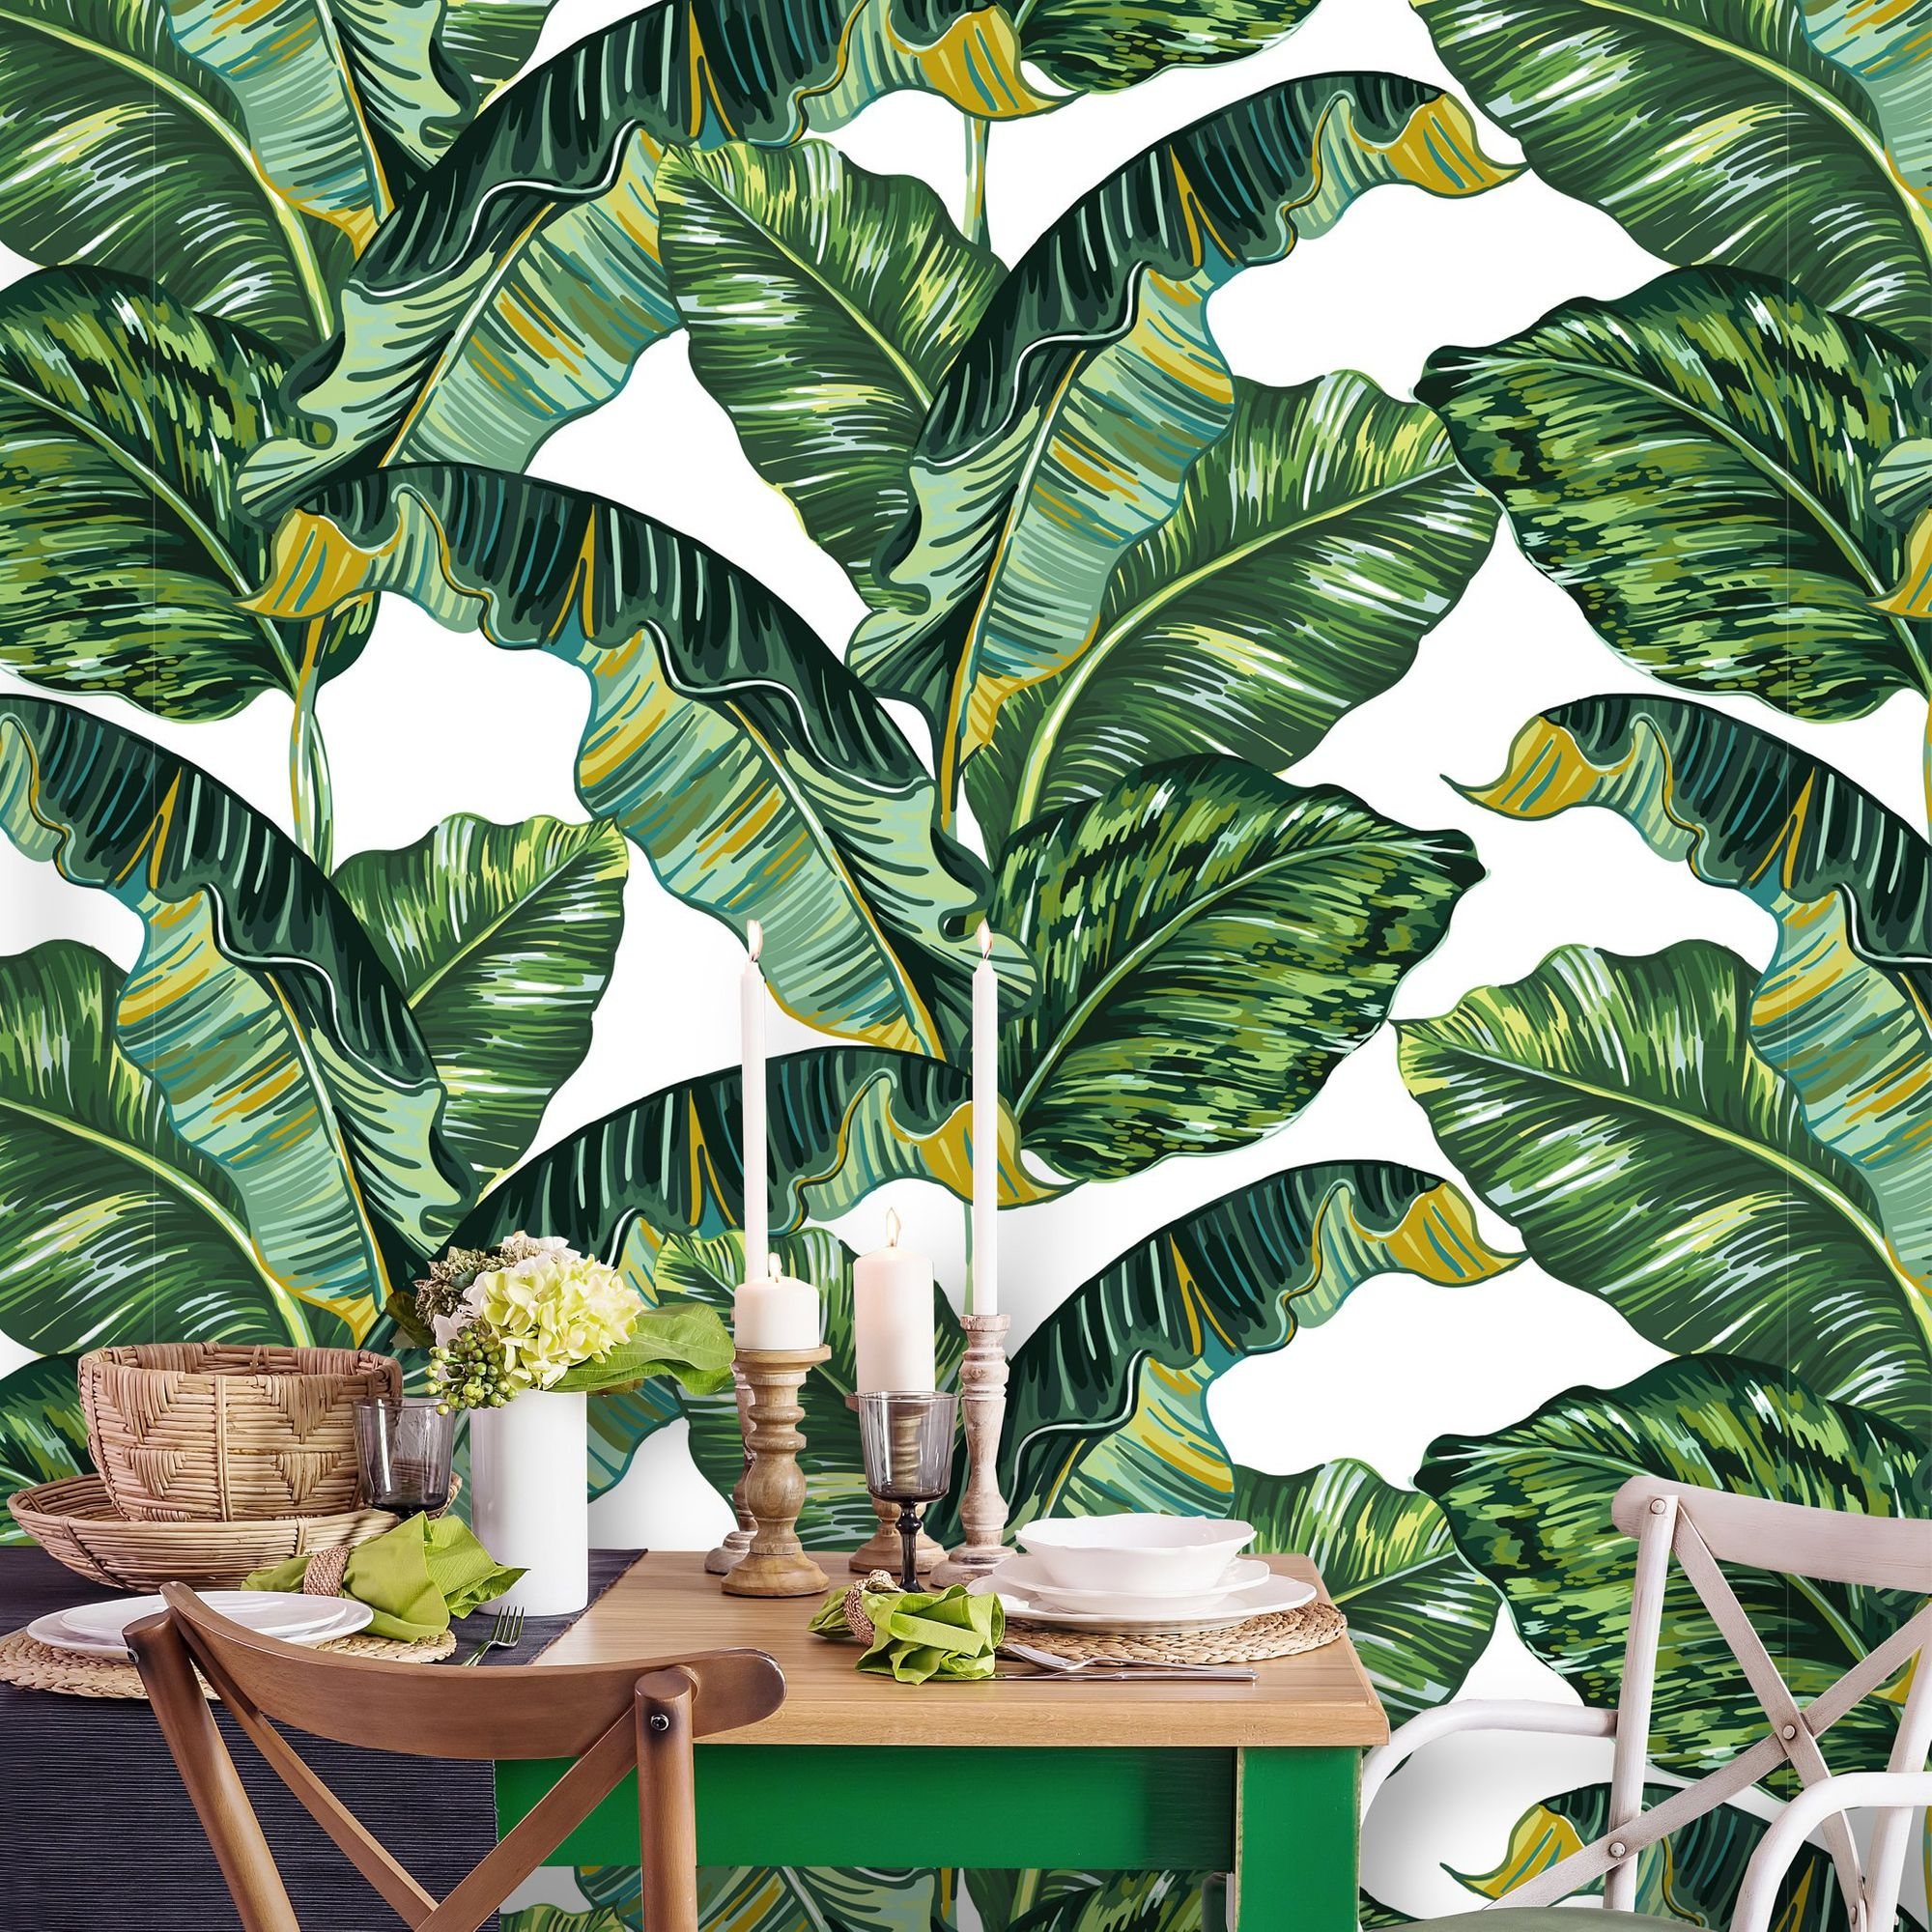 Removable Wallpaper Peel And Stick Tropical Wallpaper Self Etsy Palm Leaf Wallpaper Tropical Wallpaper Leaf Wallpaper